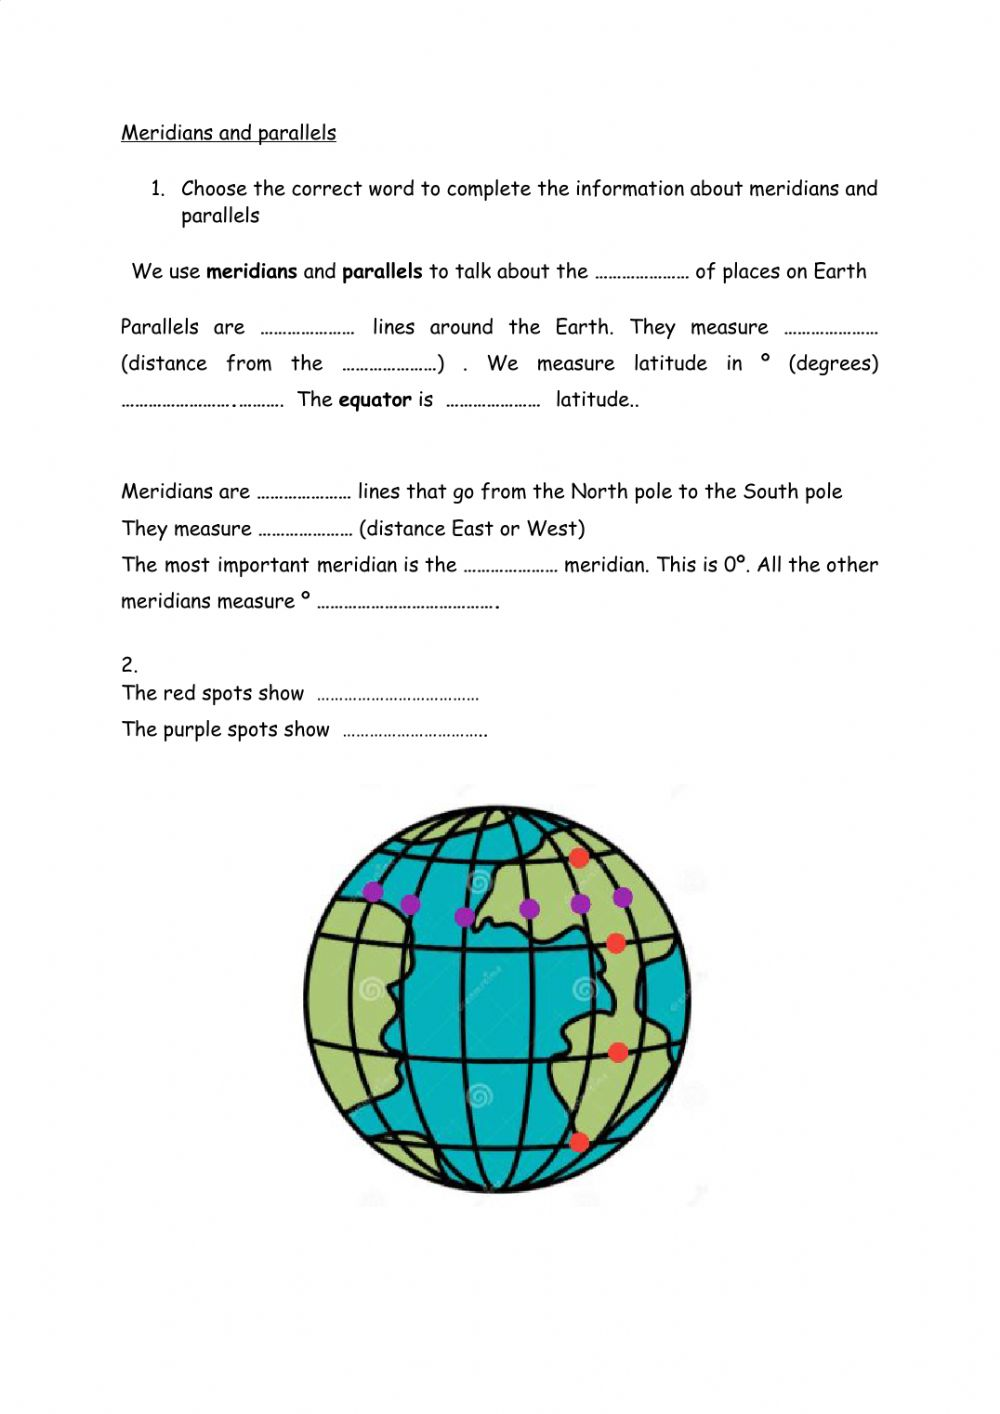 medium resolution of Parallels and meridians worksheet